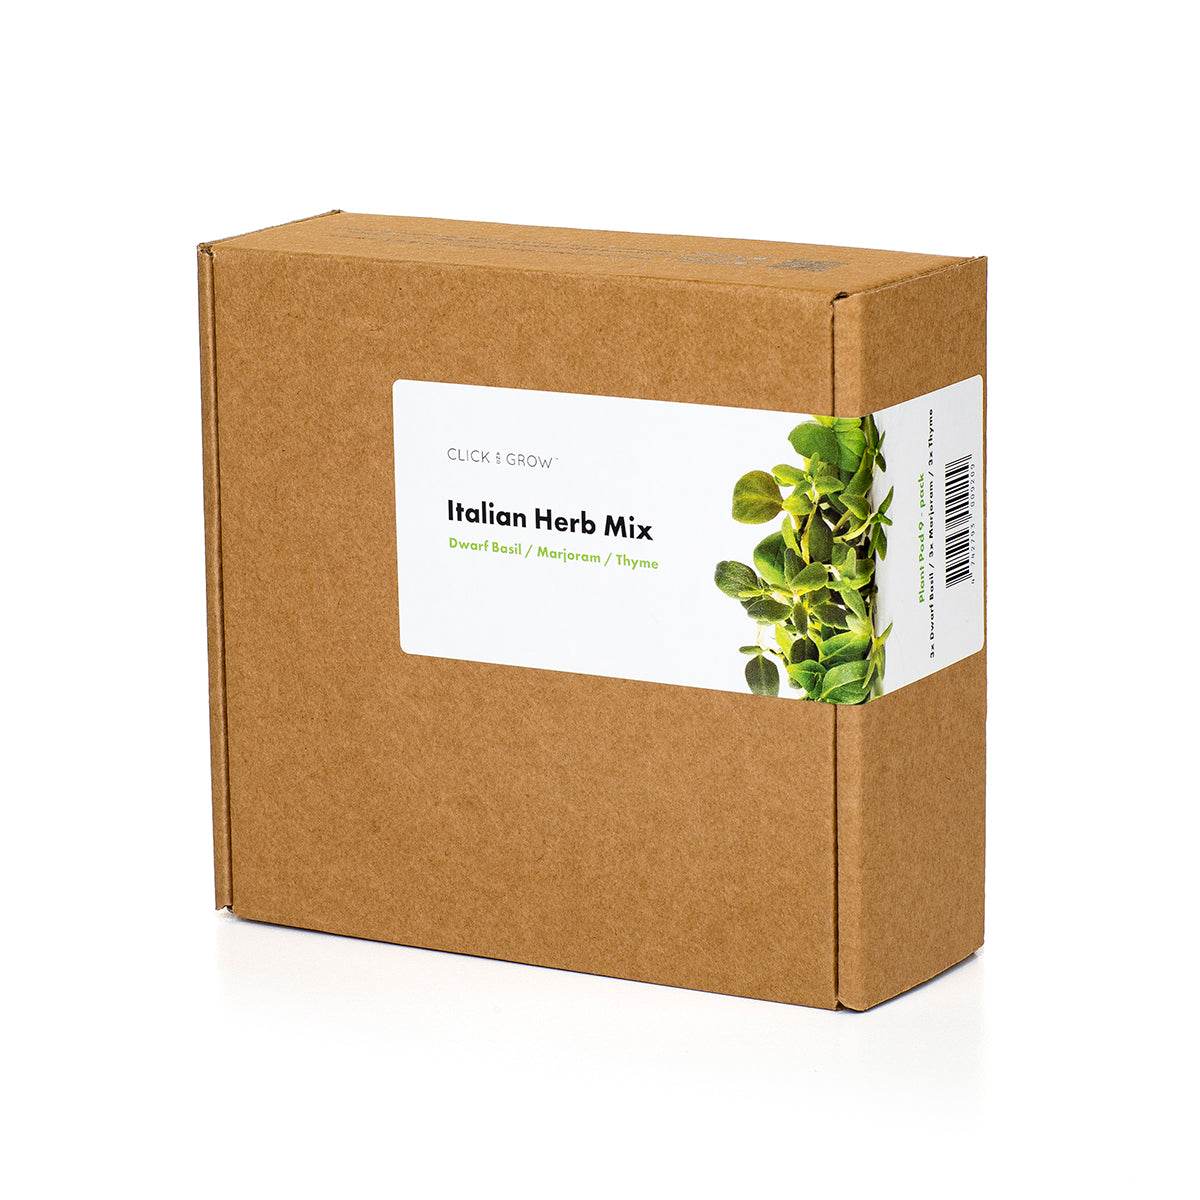 Italian Herb Mix 9-pack